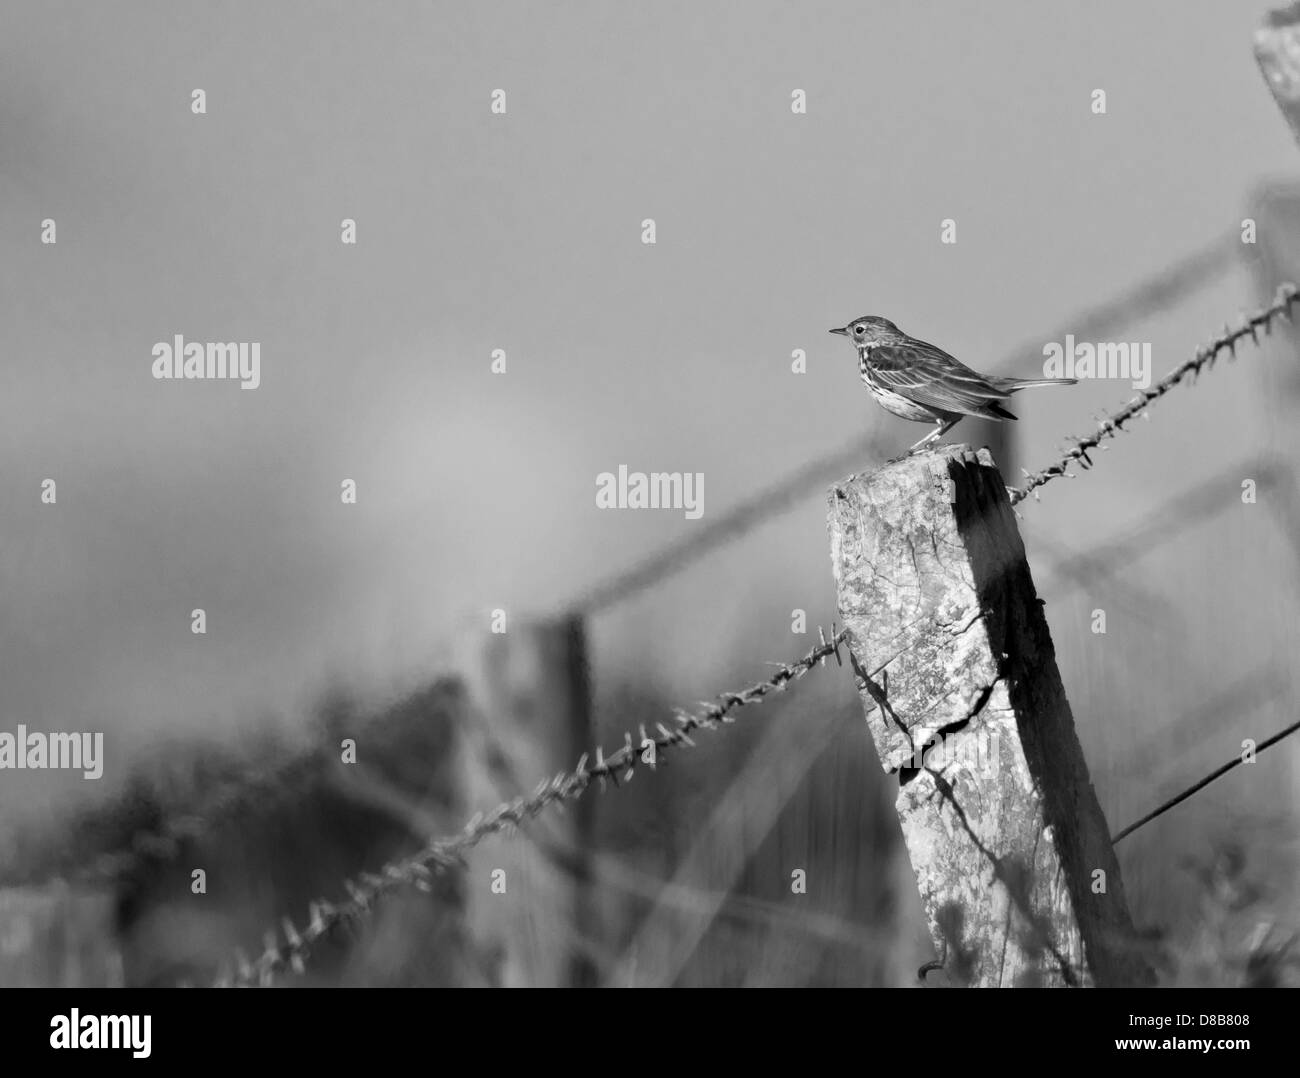 A pipit on a fence post - Stock Image